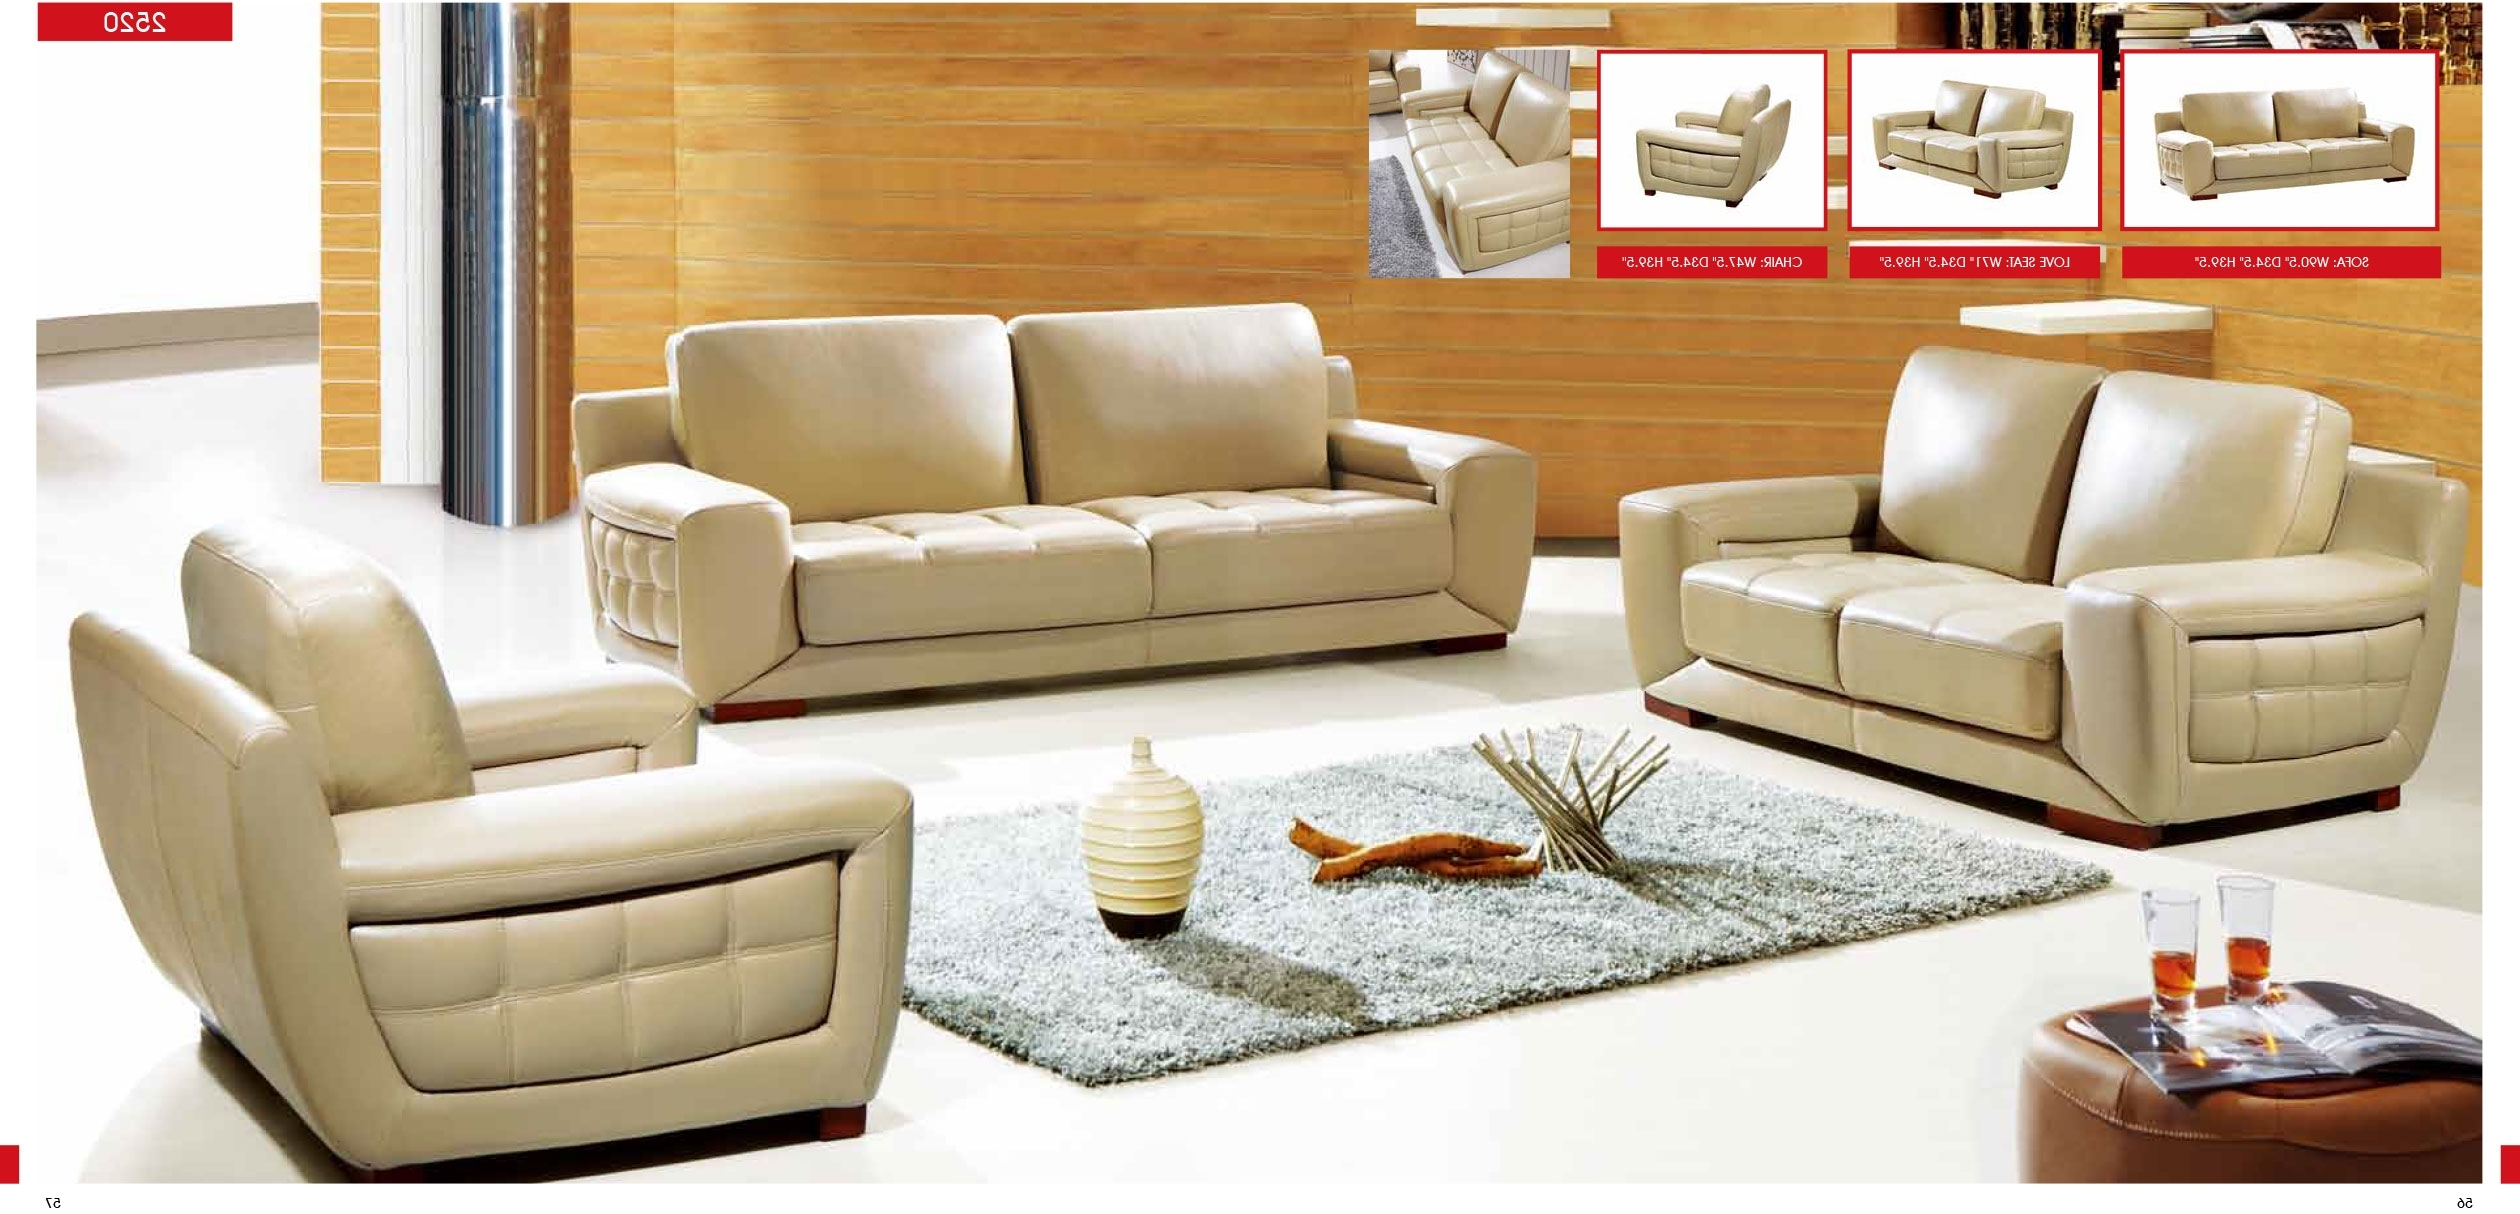 Cream Colored Sofas Throughout Preferred Manhattan Cream Colored Leather Sectional Sofa (View 7 of 20)